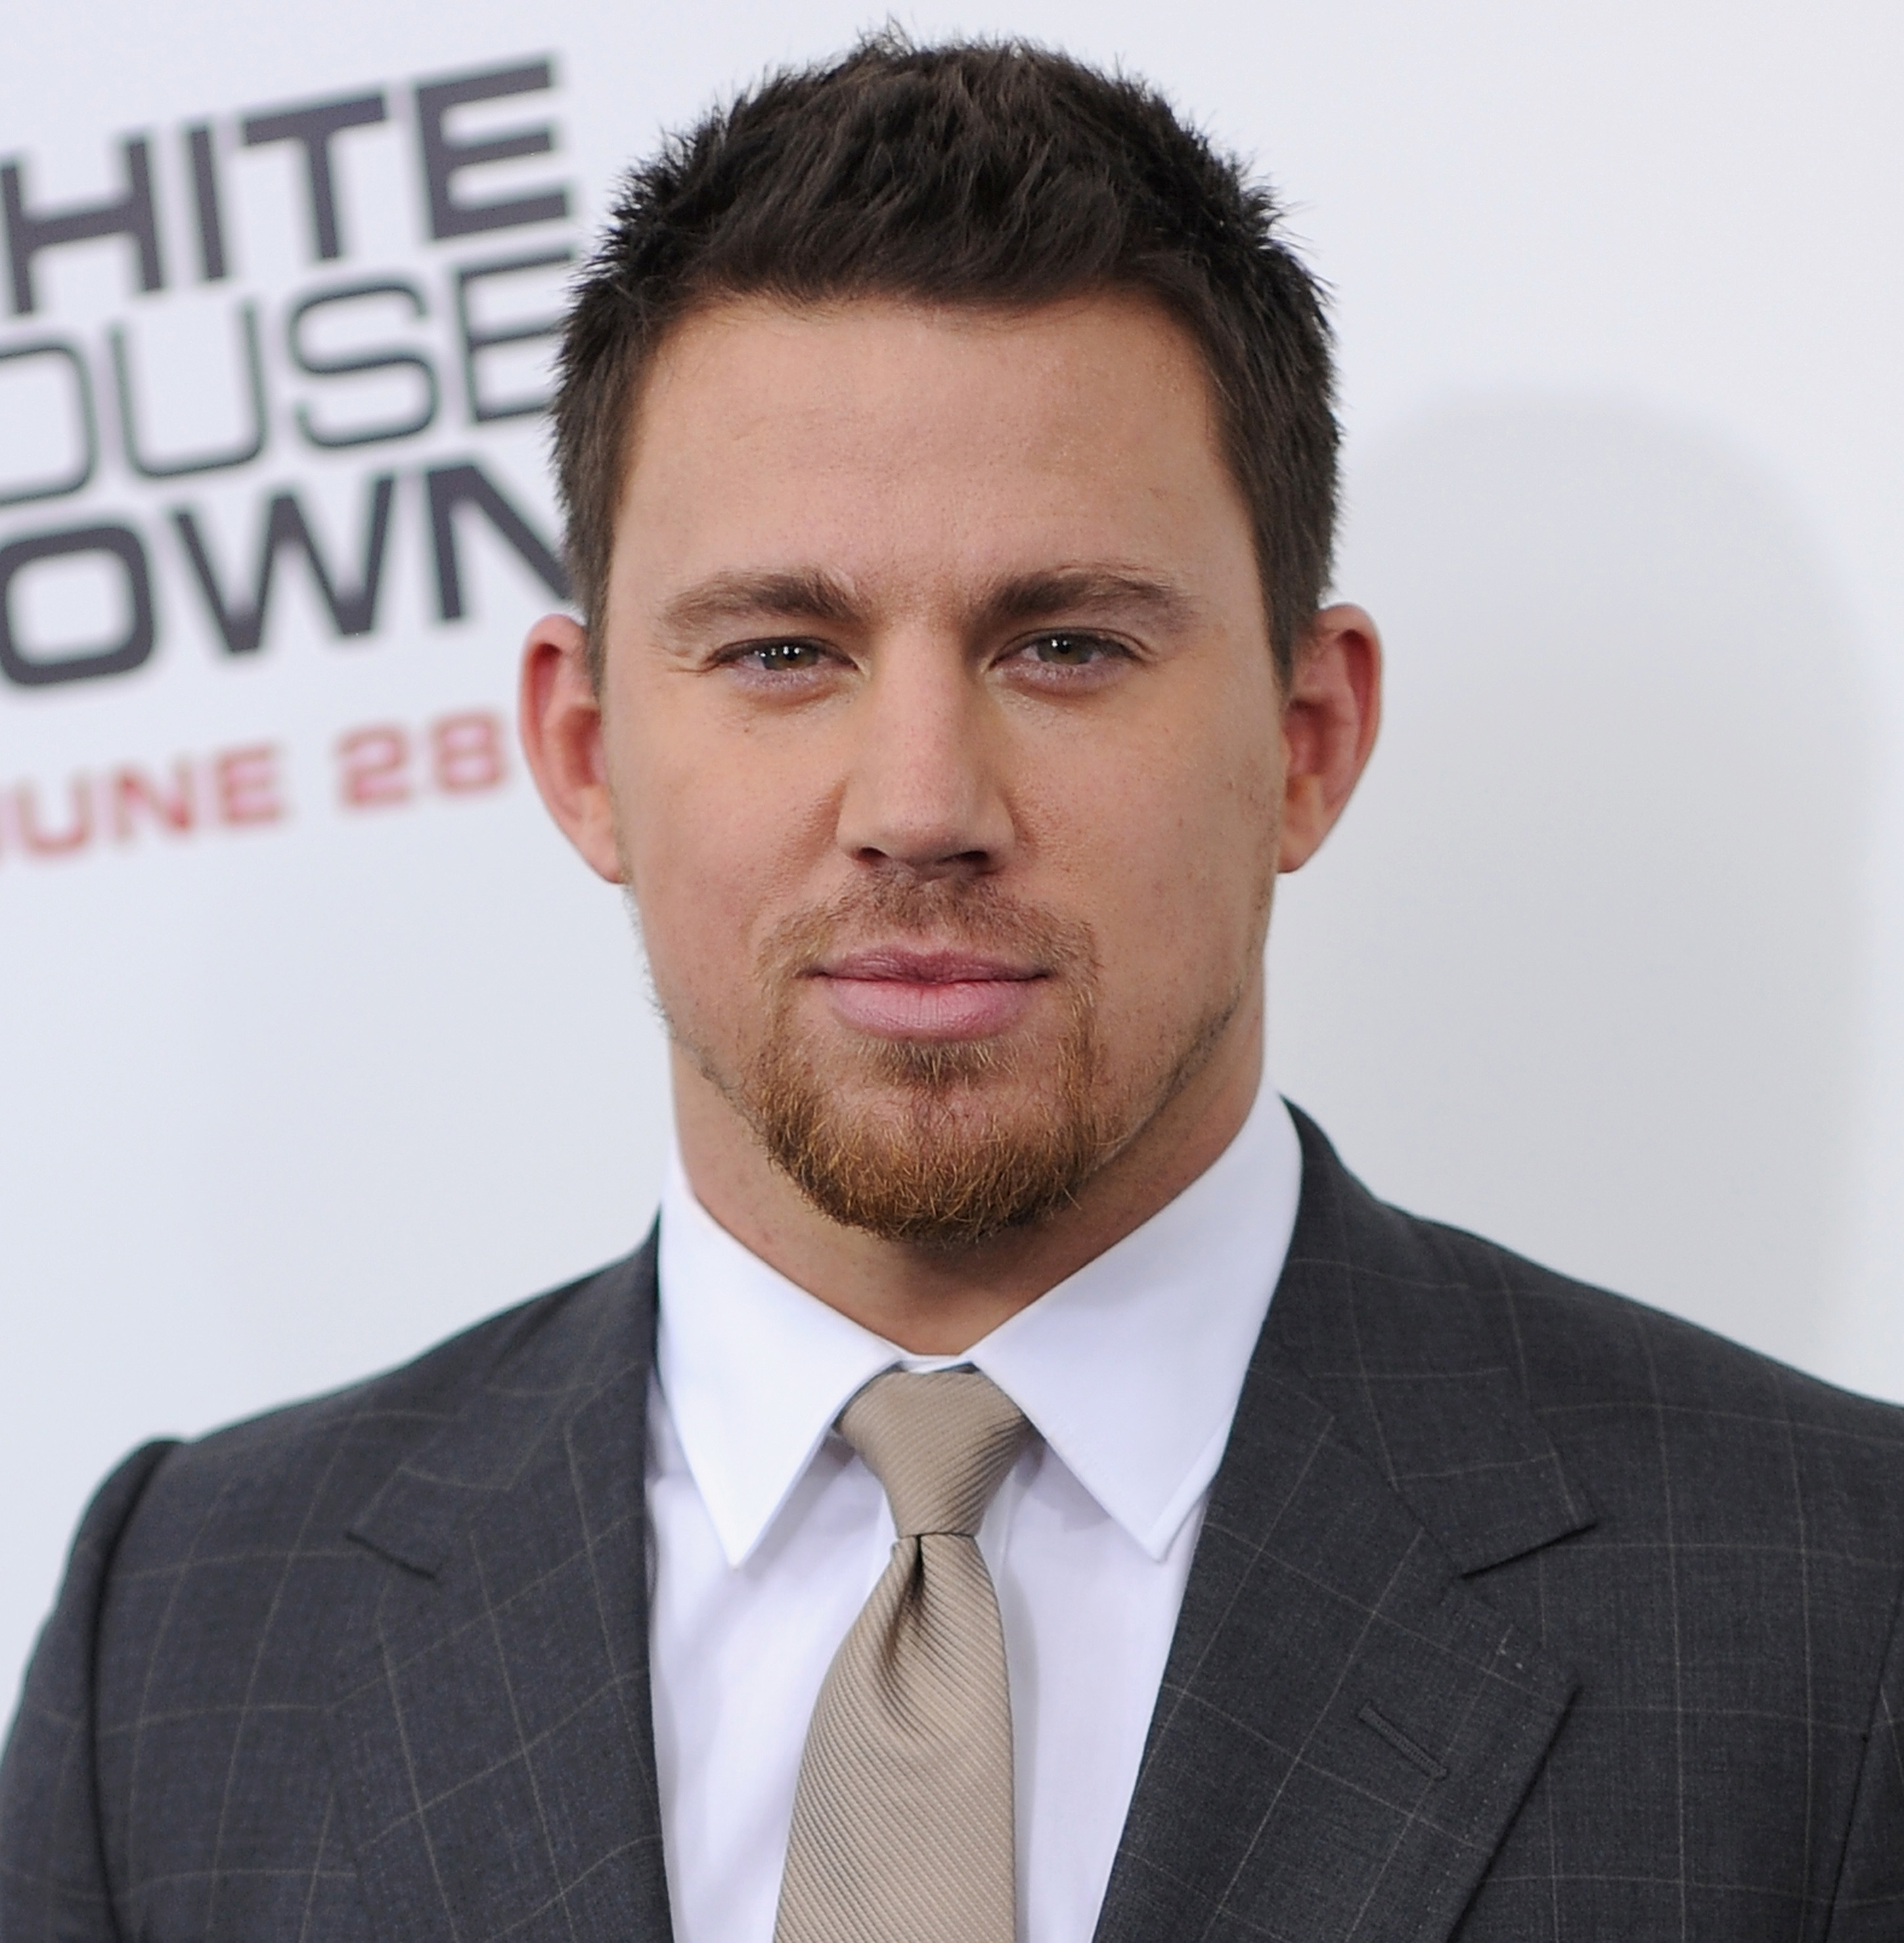 Channing Tatum tipped to replace Steven Soderbergh as Magic Mike 2 director